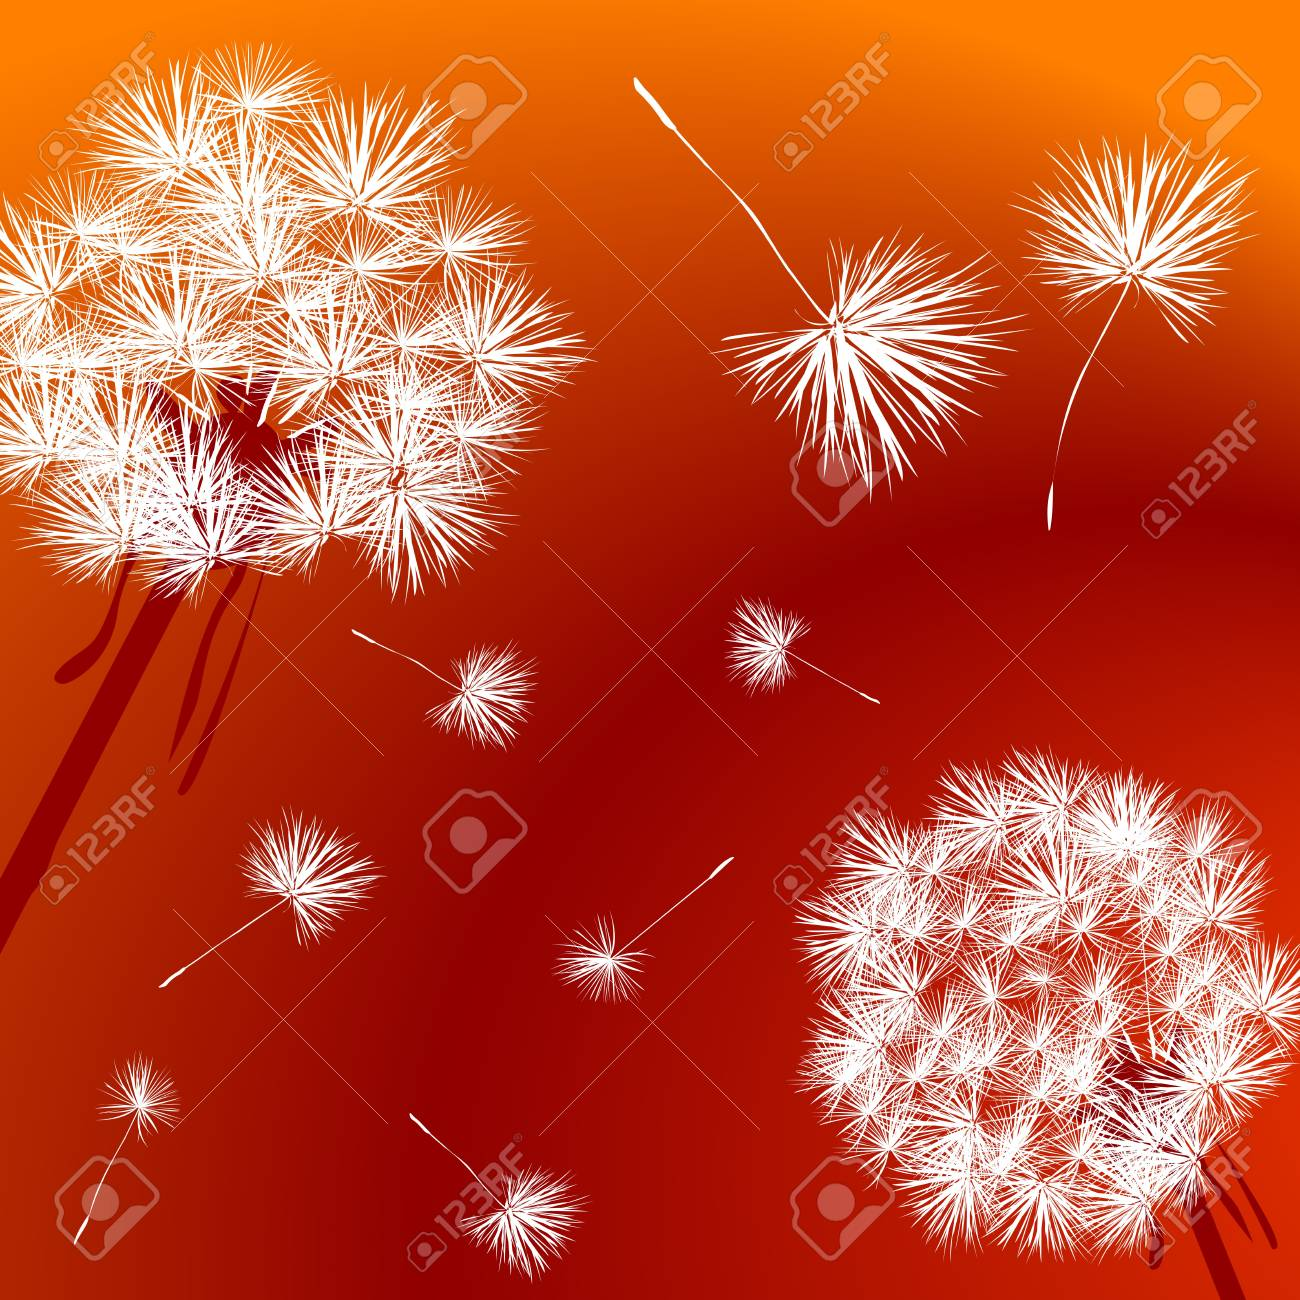 Dandelions over a bright red background Stock Photo - 7101287